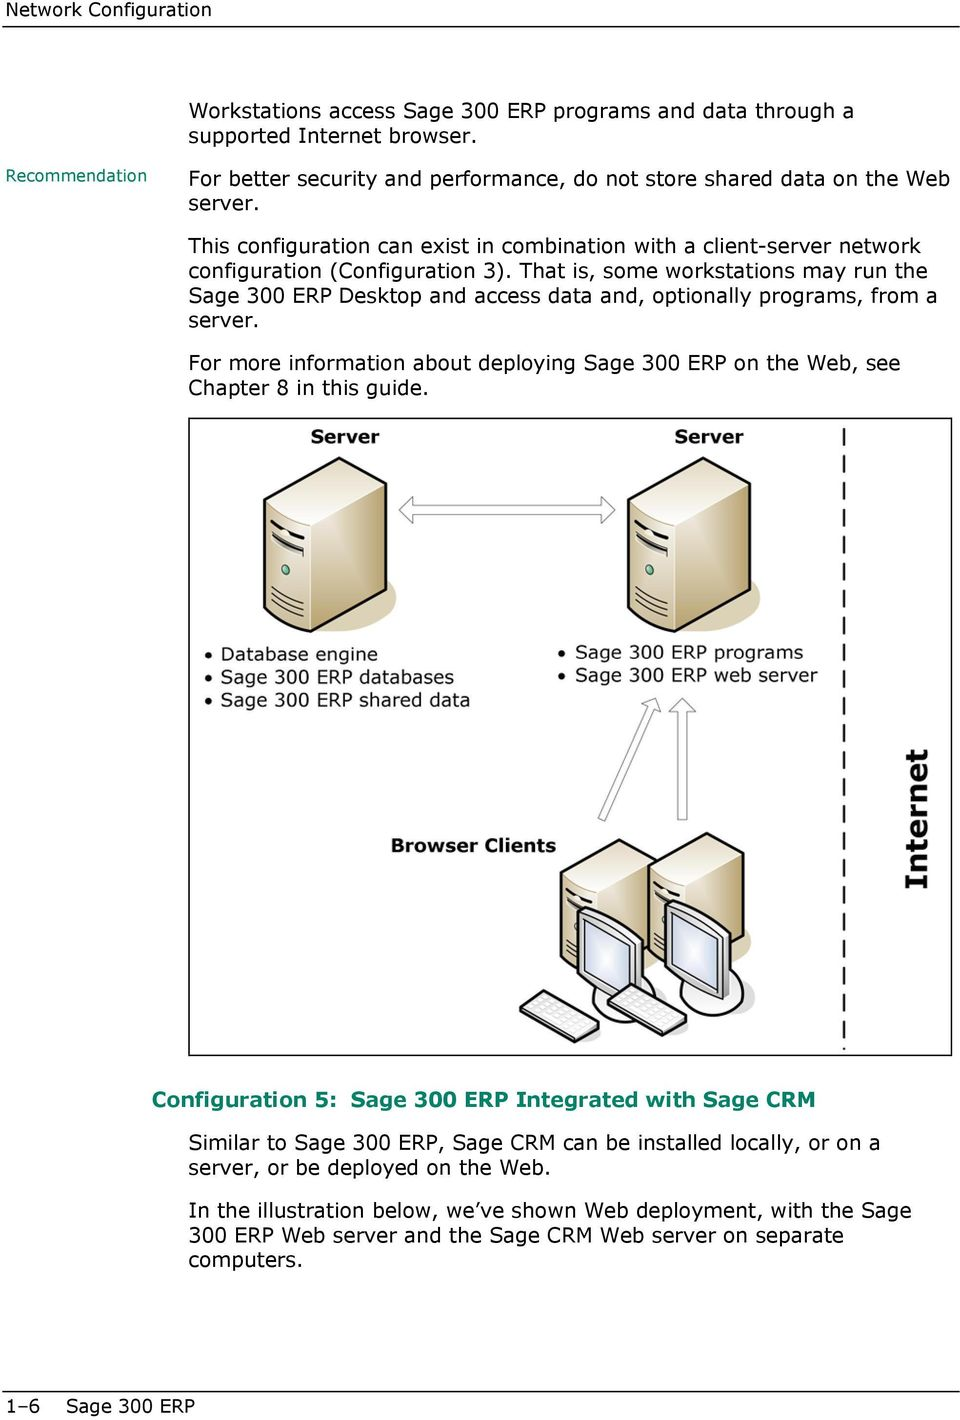 This configuration can exist in combination with a client-server network configuration (Configuration 3).